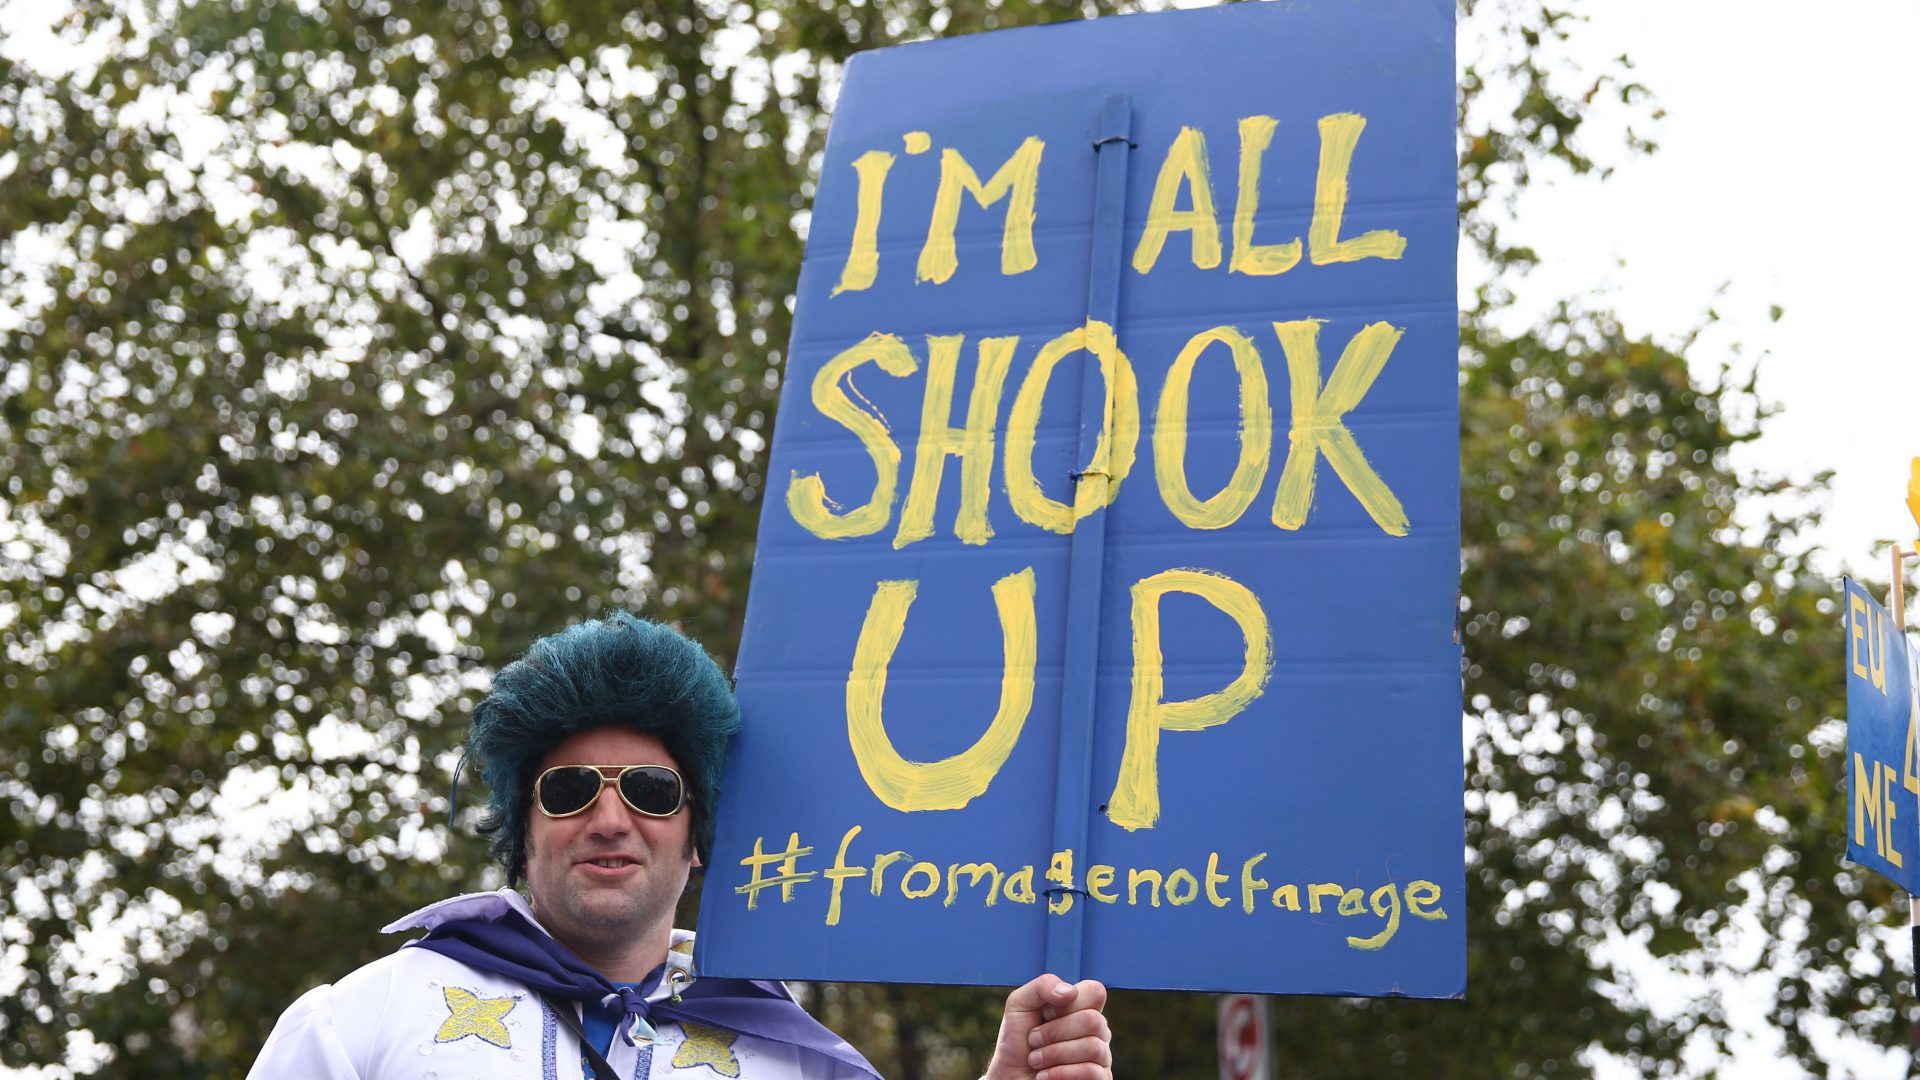 A man dressed as Elvis Presley stands with a pro-Europe placard as people gathered for a March for Europe protest to against the Brexit vote in London on September 3, 2016. Thousands marched in central London to Parliament Square in a pro-Europe rally against the referendum vote to leave the European Union.